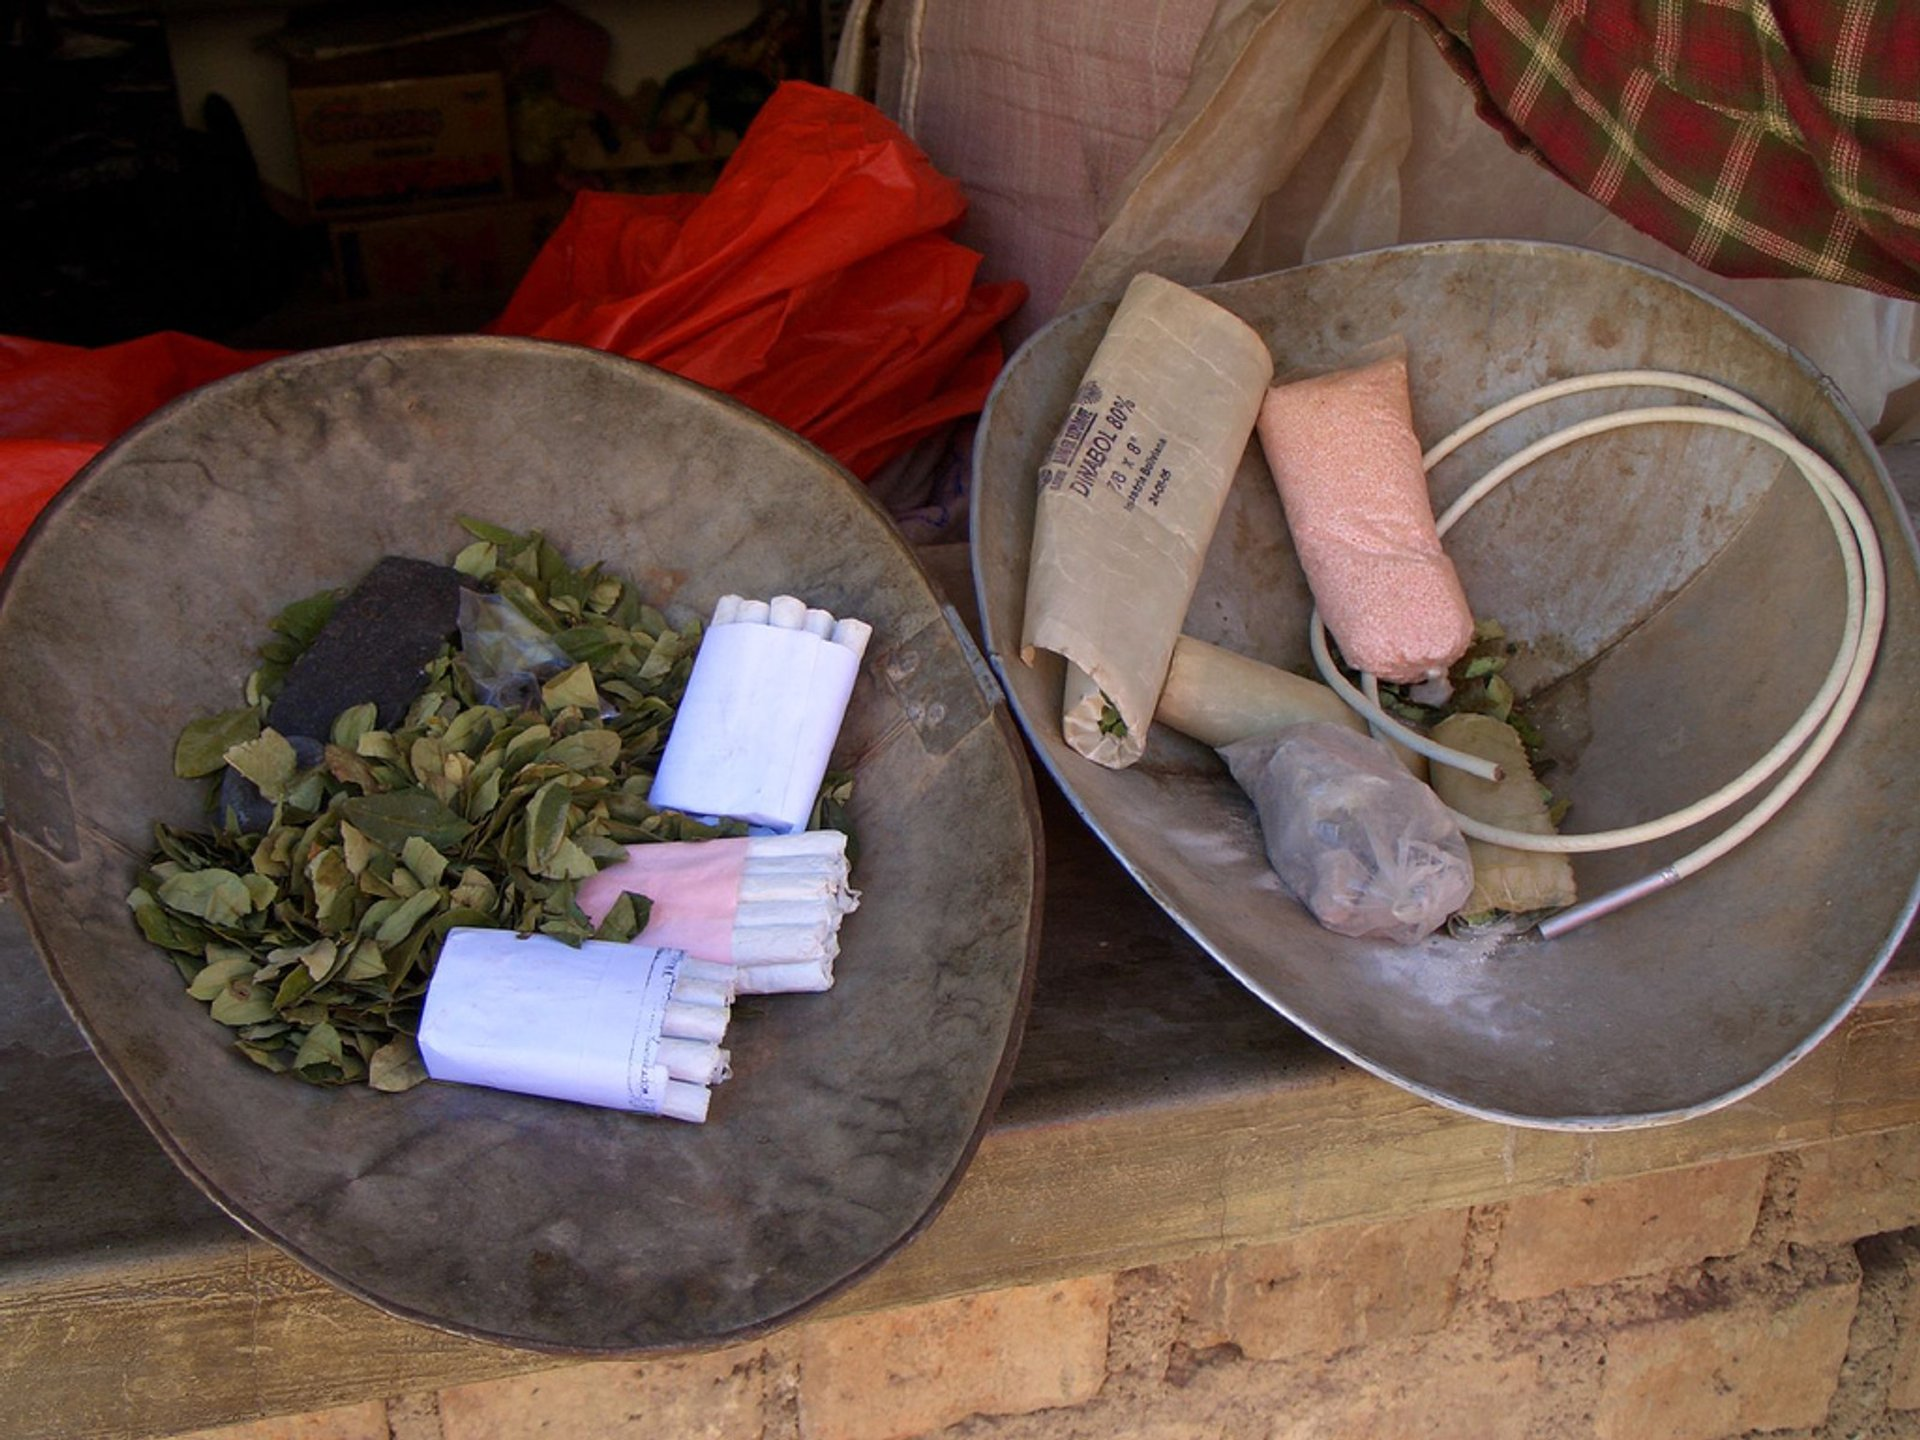 Before we went in we bought gifts for the miners. This included, coca leaves for chewing, hand rolled cigarettes, explosives, a detonator and a fuse! (c) 2019